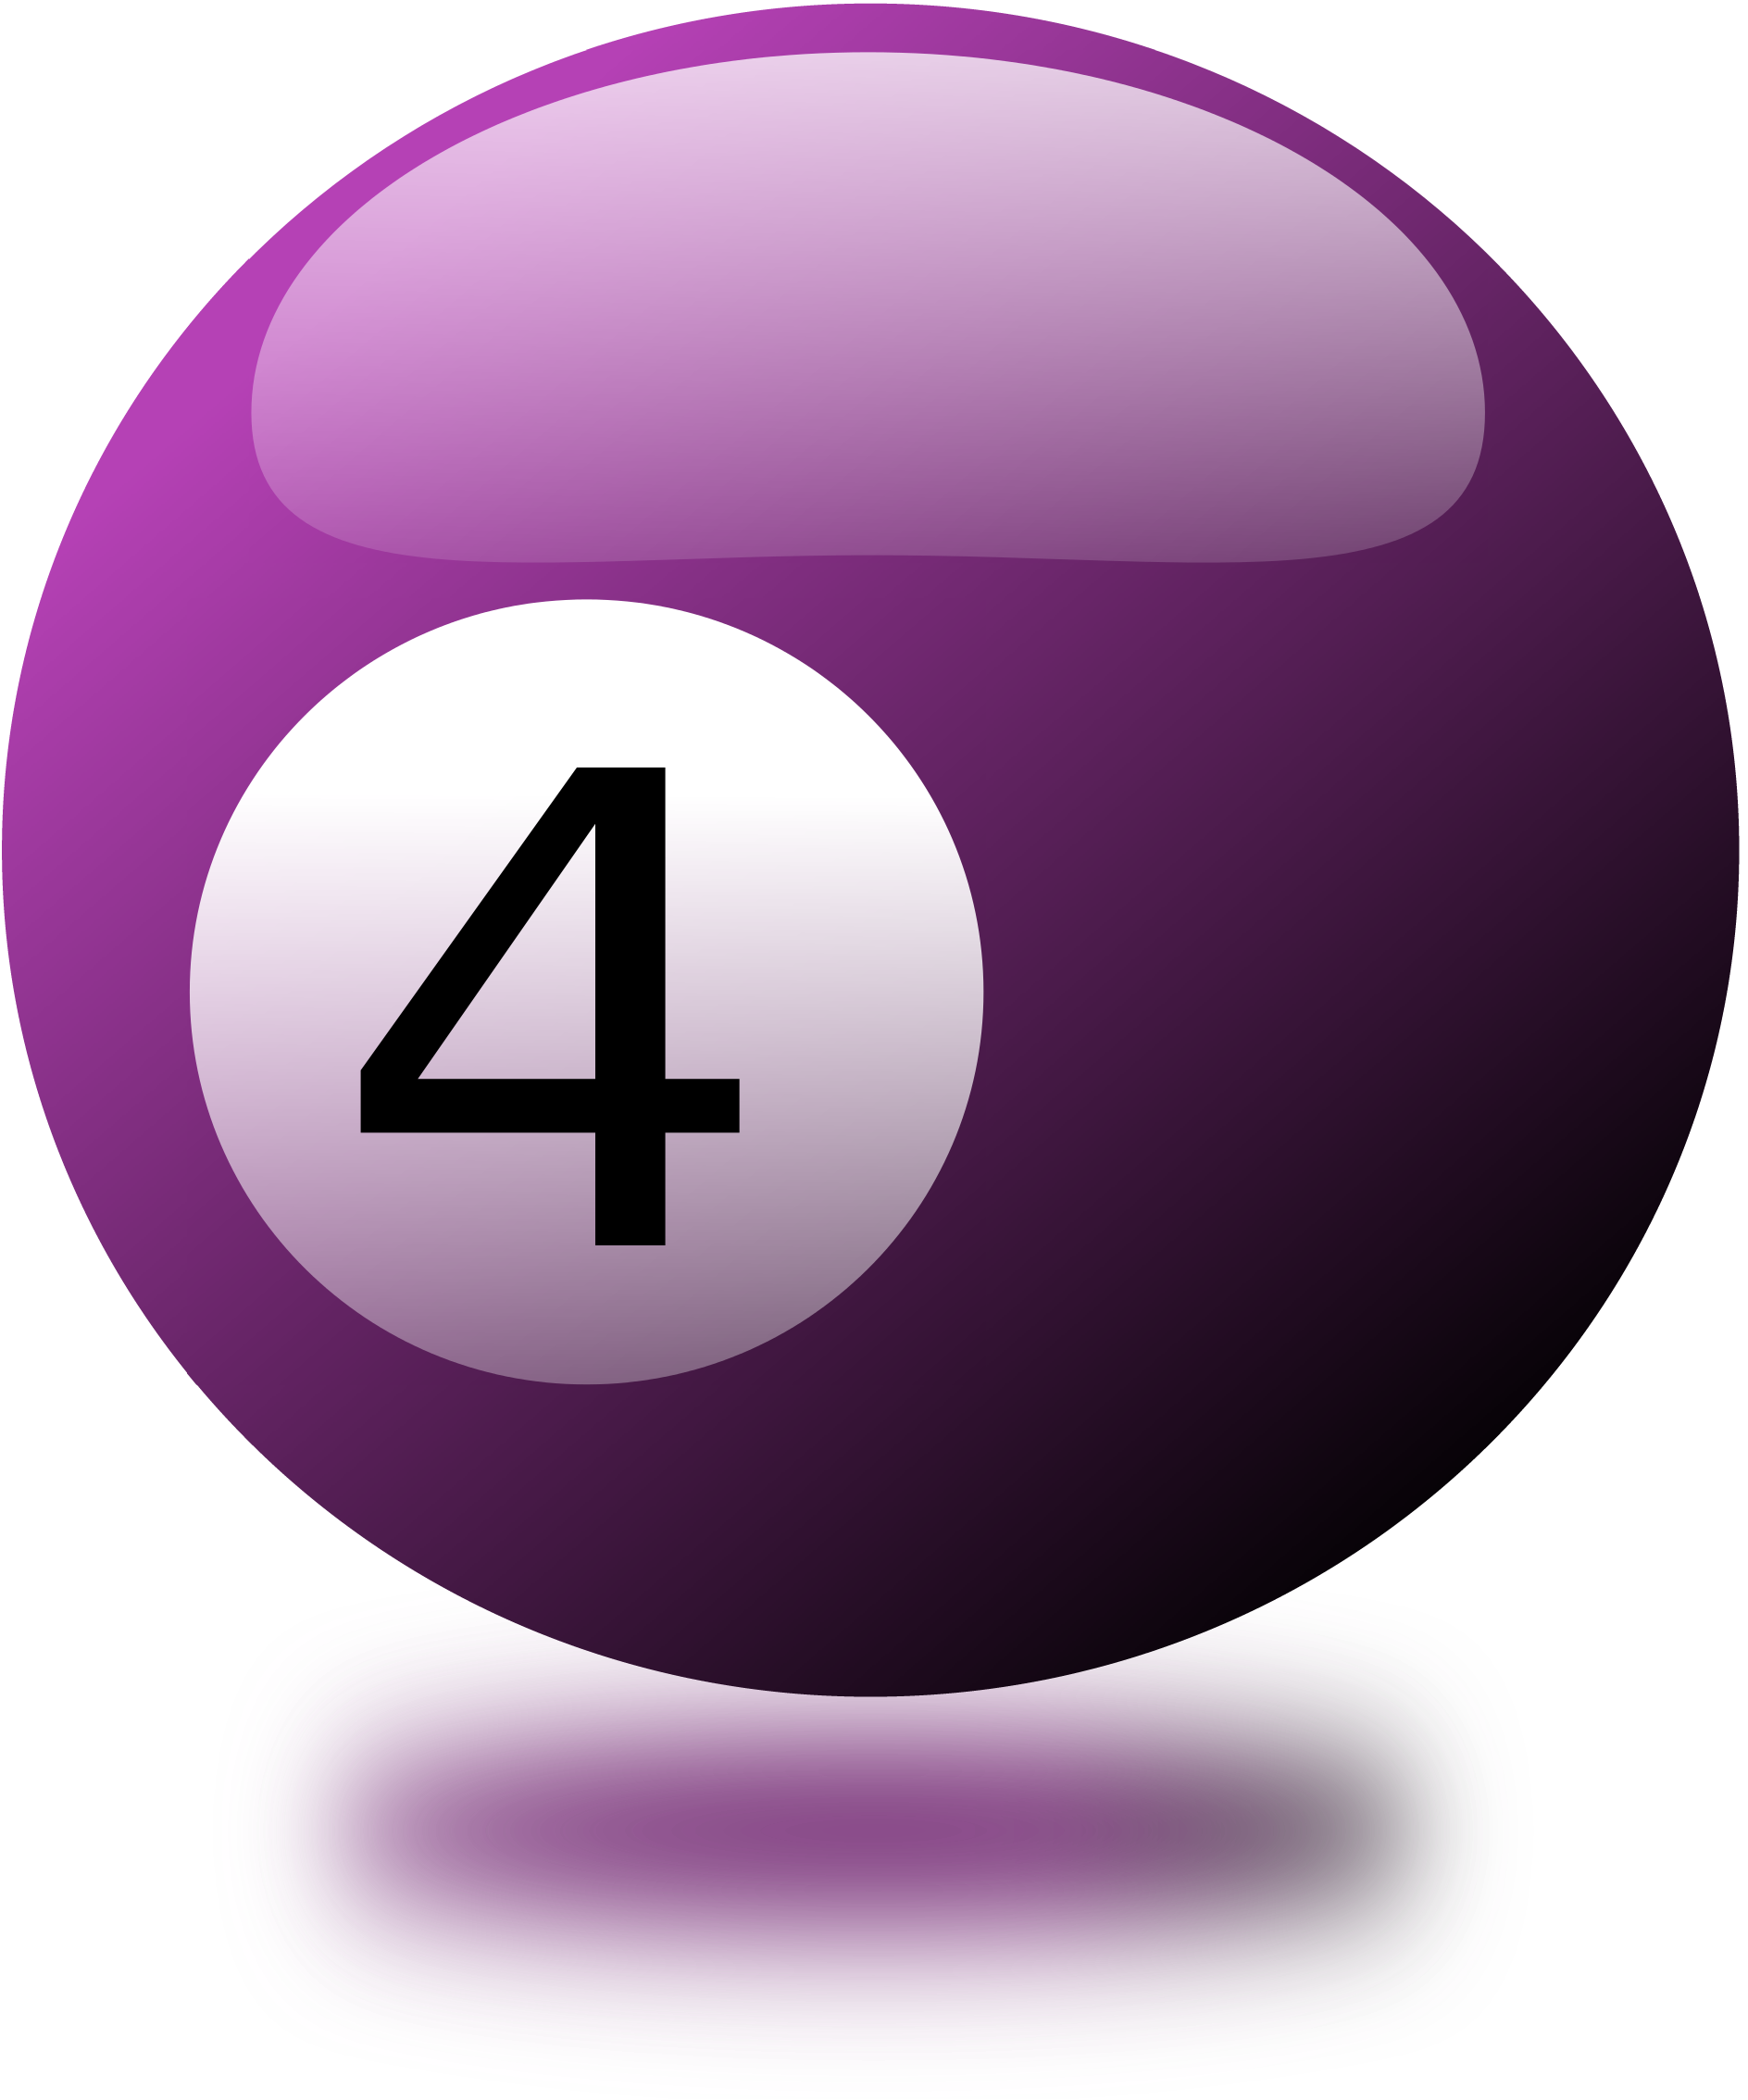 Pool Ball Transparent PNG - Pool Ball PNG HD